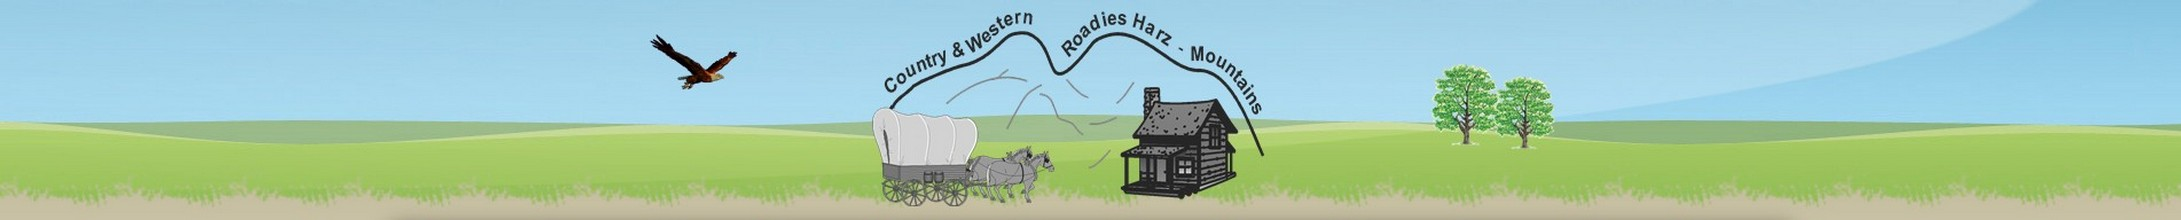 Country & Western Roadies Harz Mountains e.V